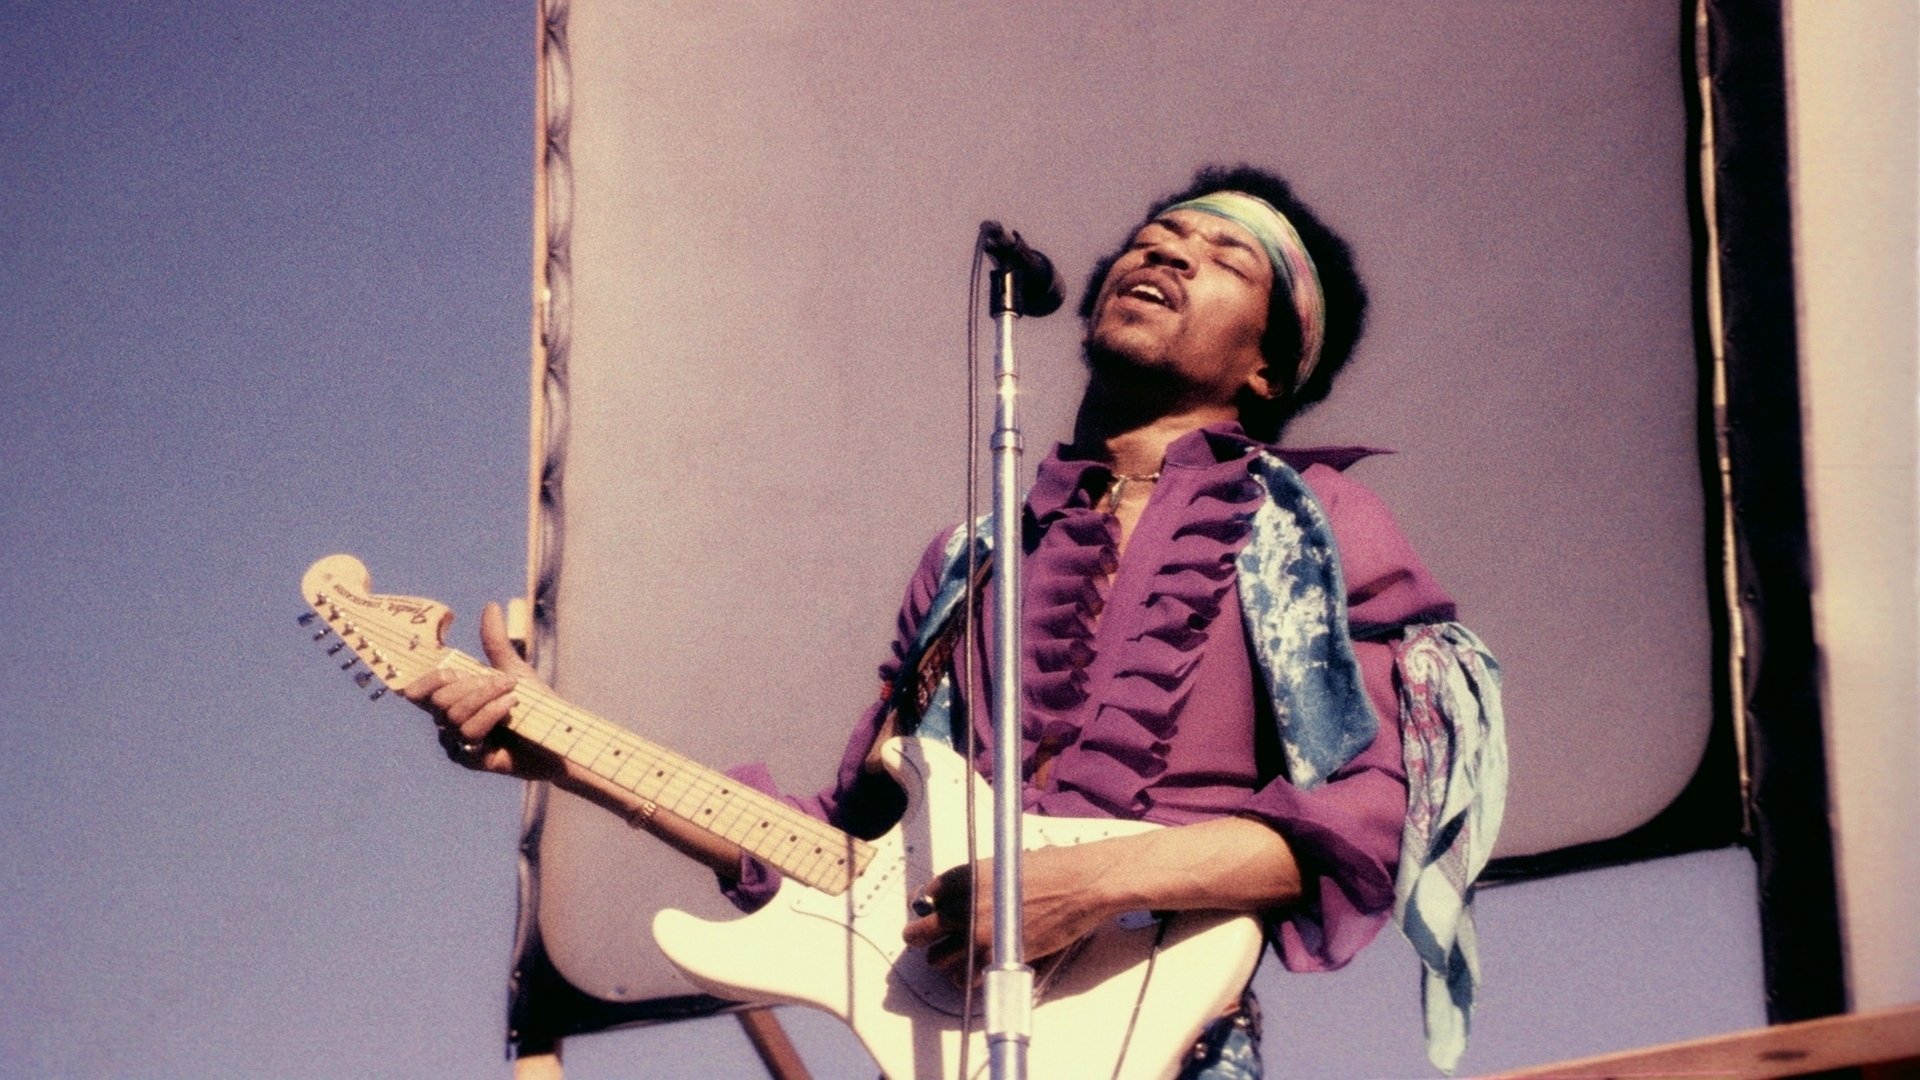 Little Wing av Jimi Hendrix